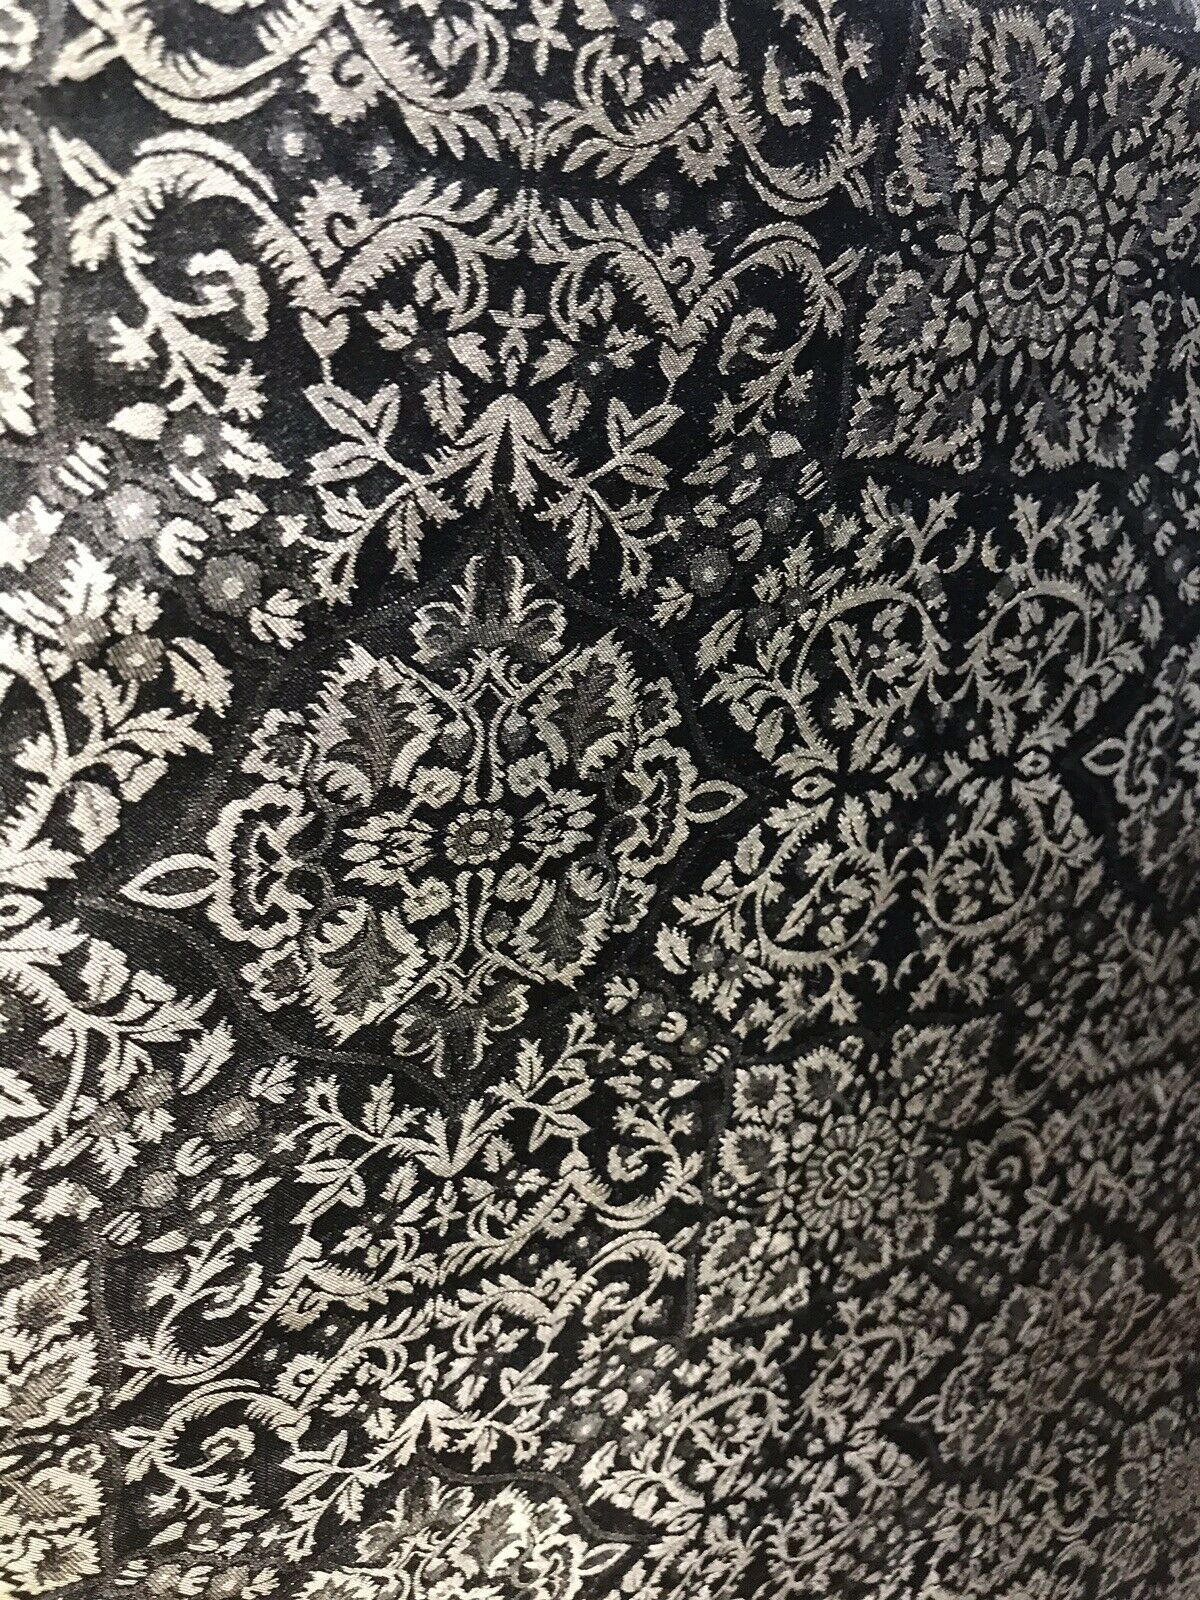 SALE! 100% Silk Taffeta Ornate Drapery Fabric - Gold And Black-By The Yard